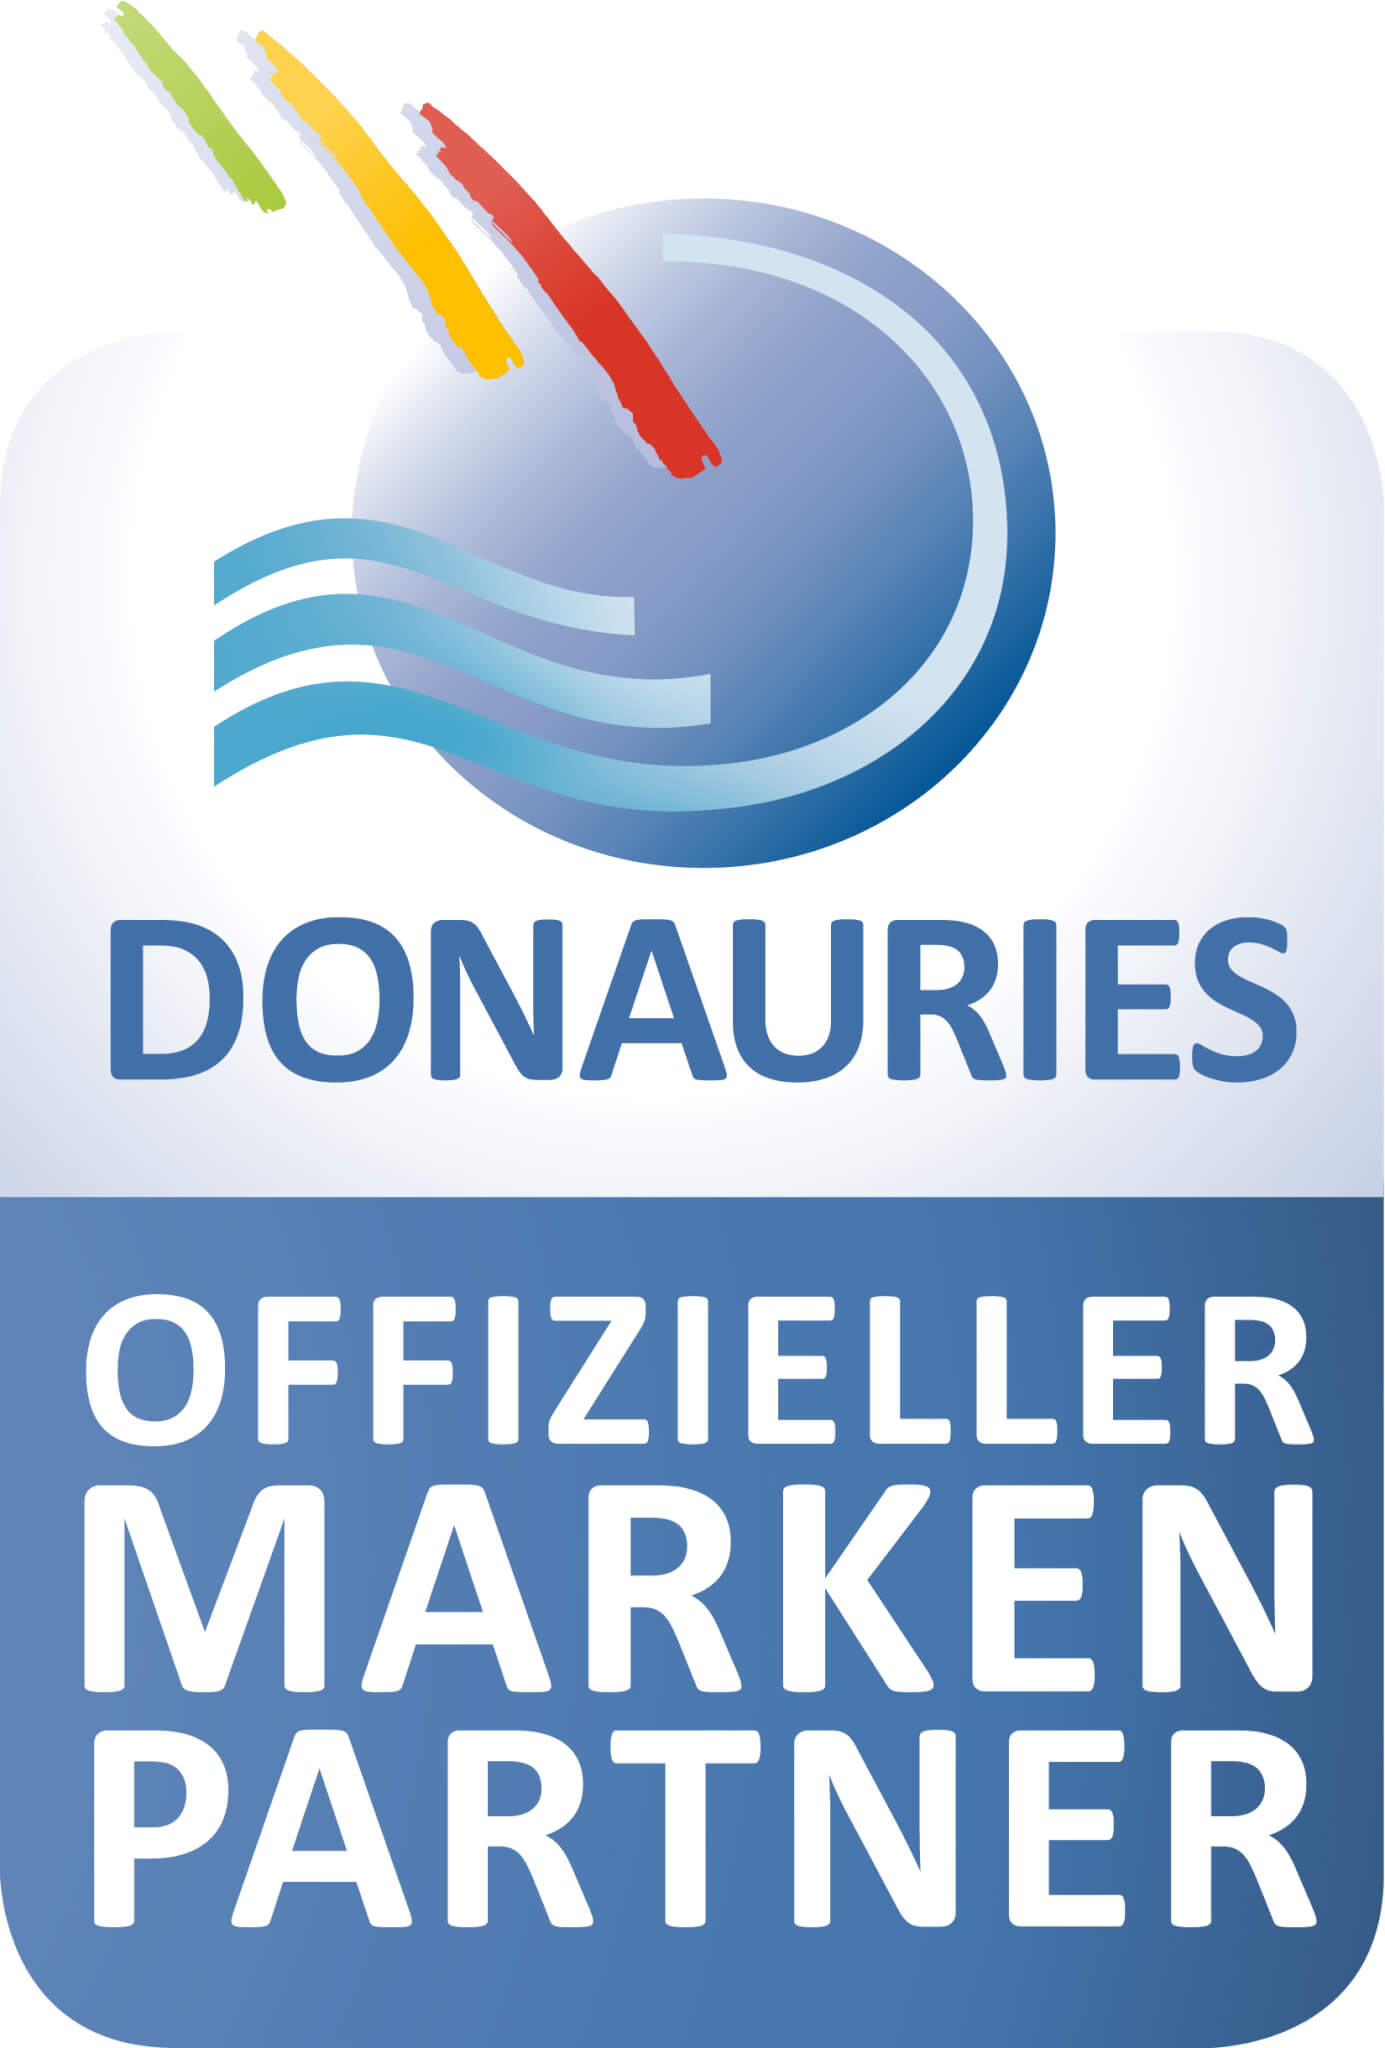 DONAURIES Marken-Partner